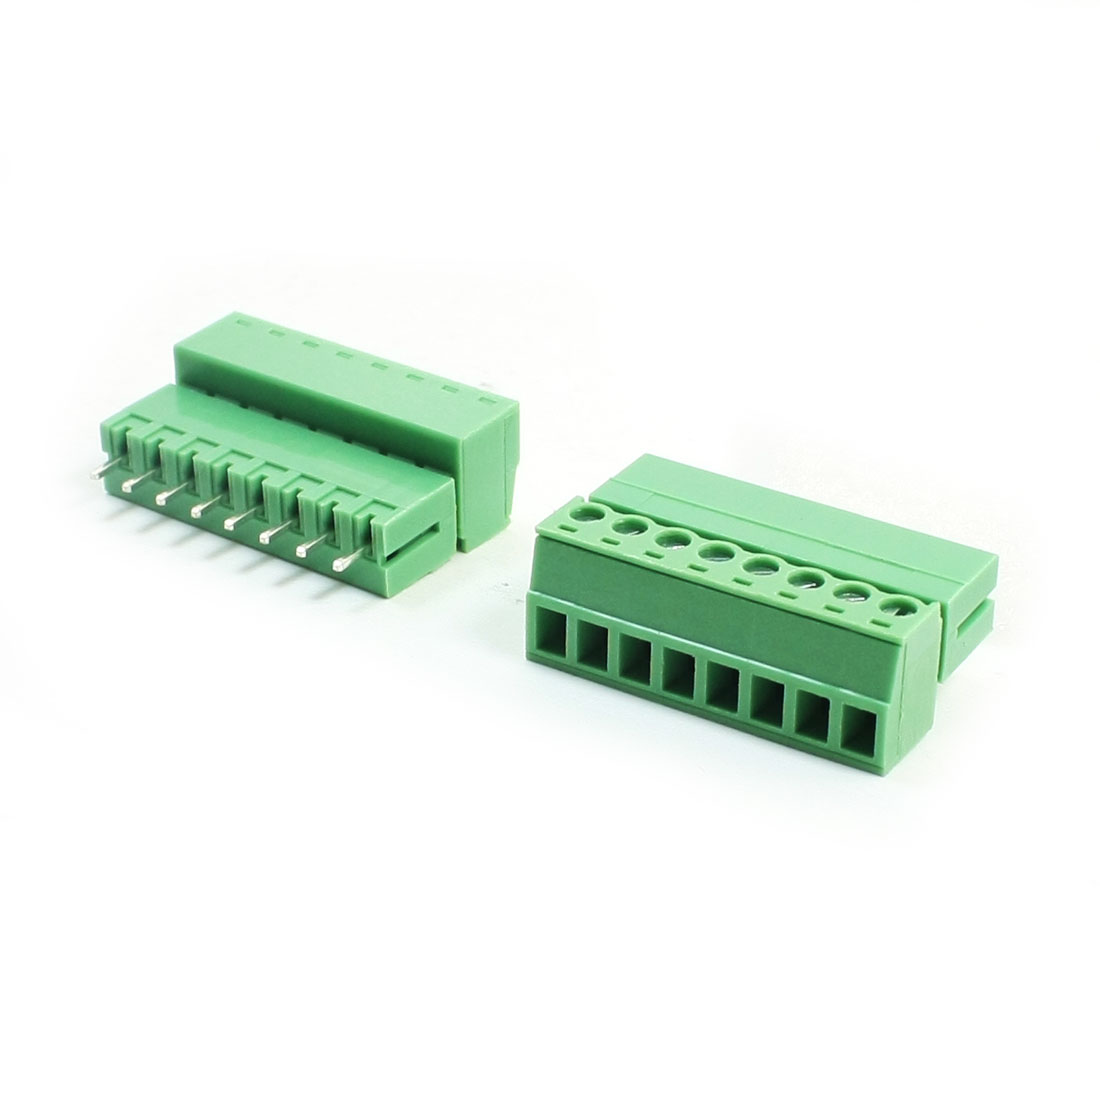 2Pcs AC300V 8A 3.81mm Pitch 8Pin Through Hole Pluggable Type PCB Screw Terminal Barrier Block Connector for 22-16AWG Wire